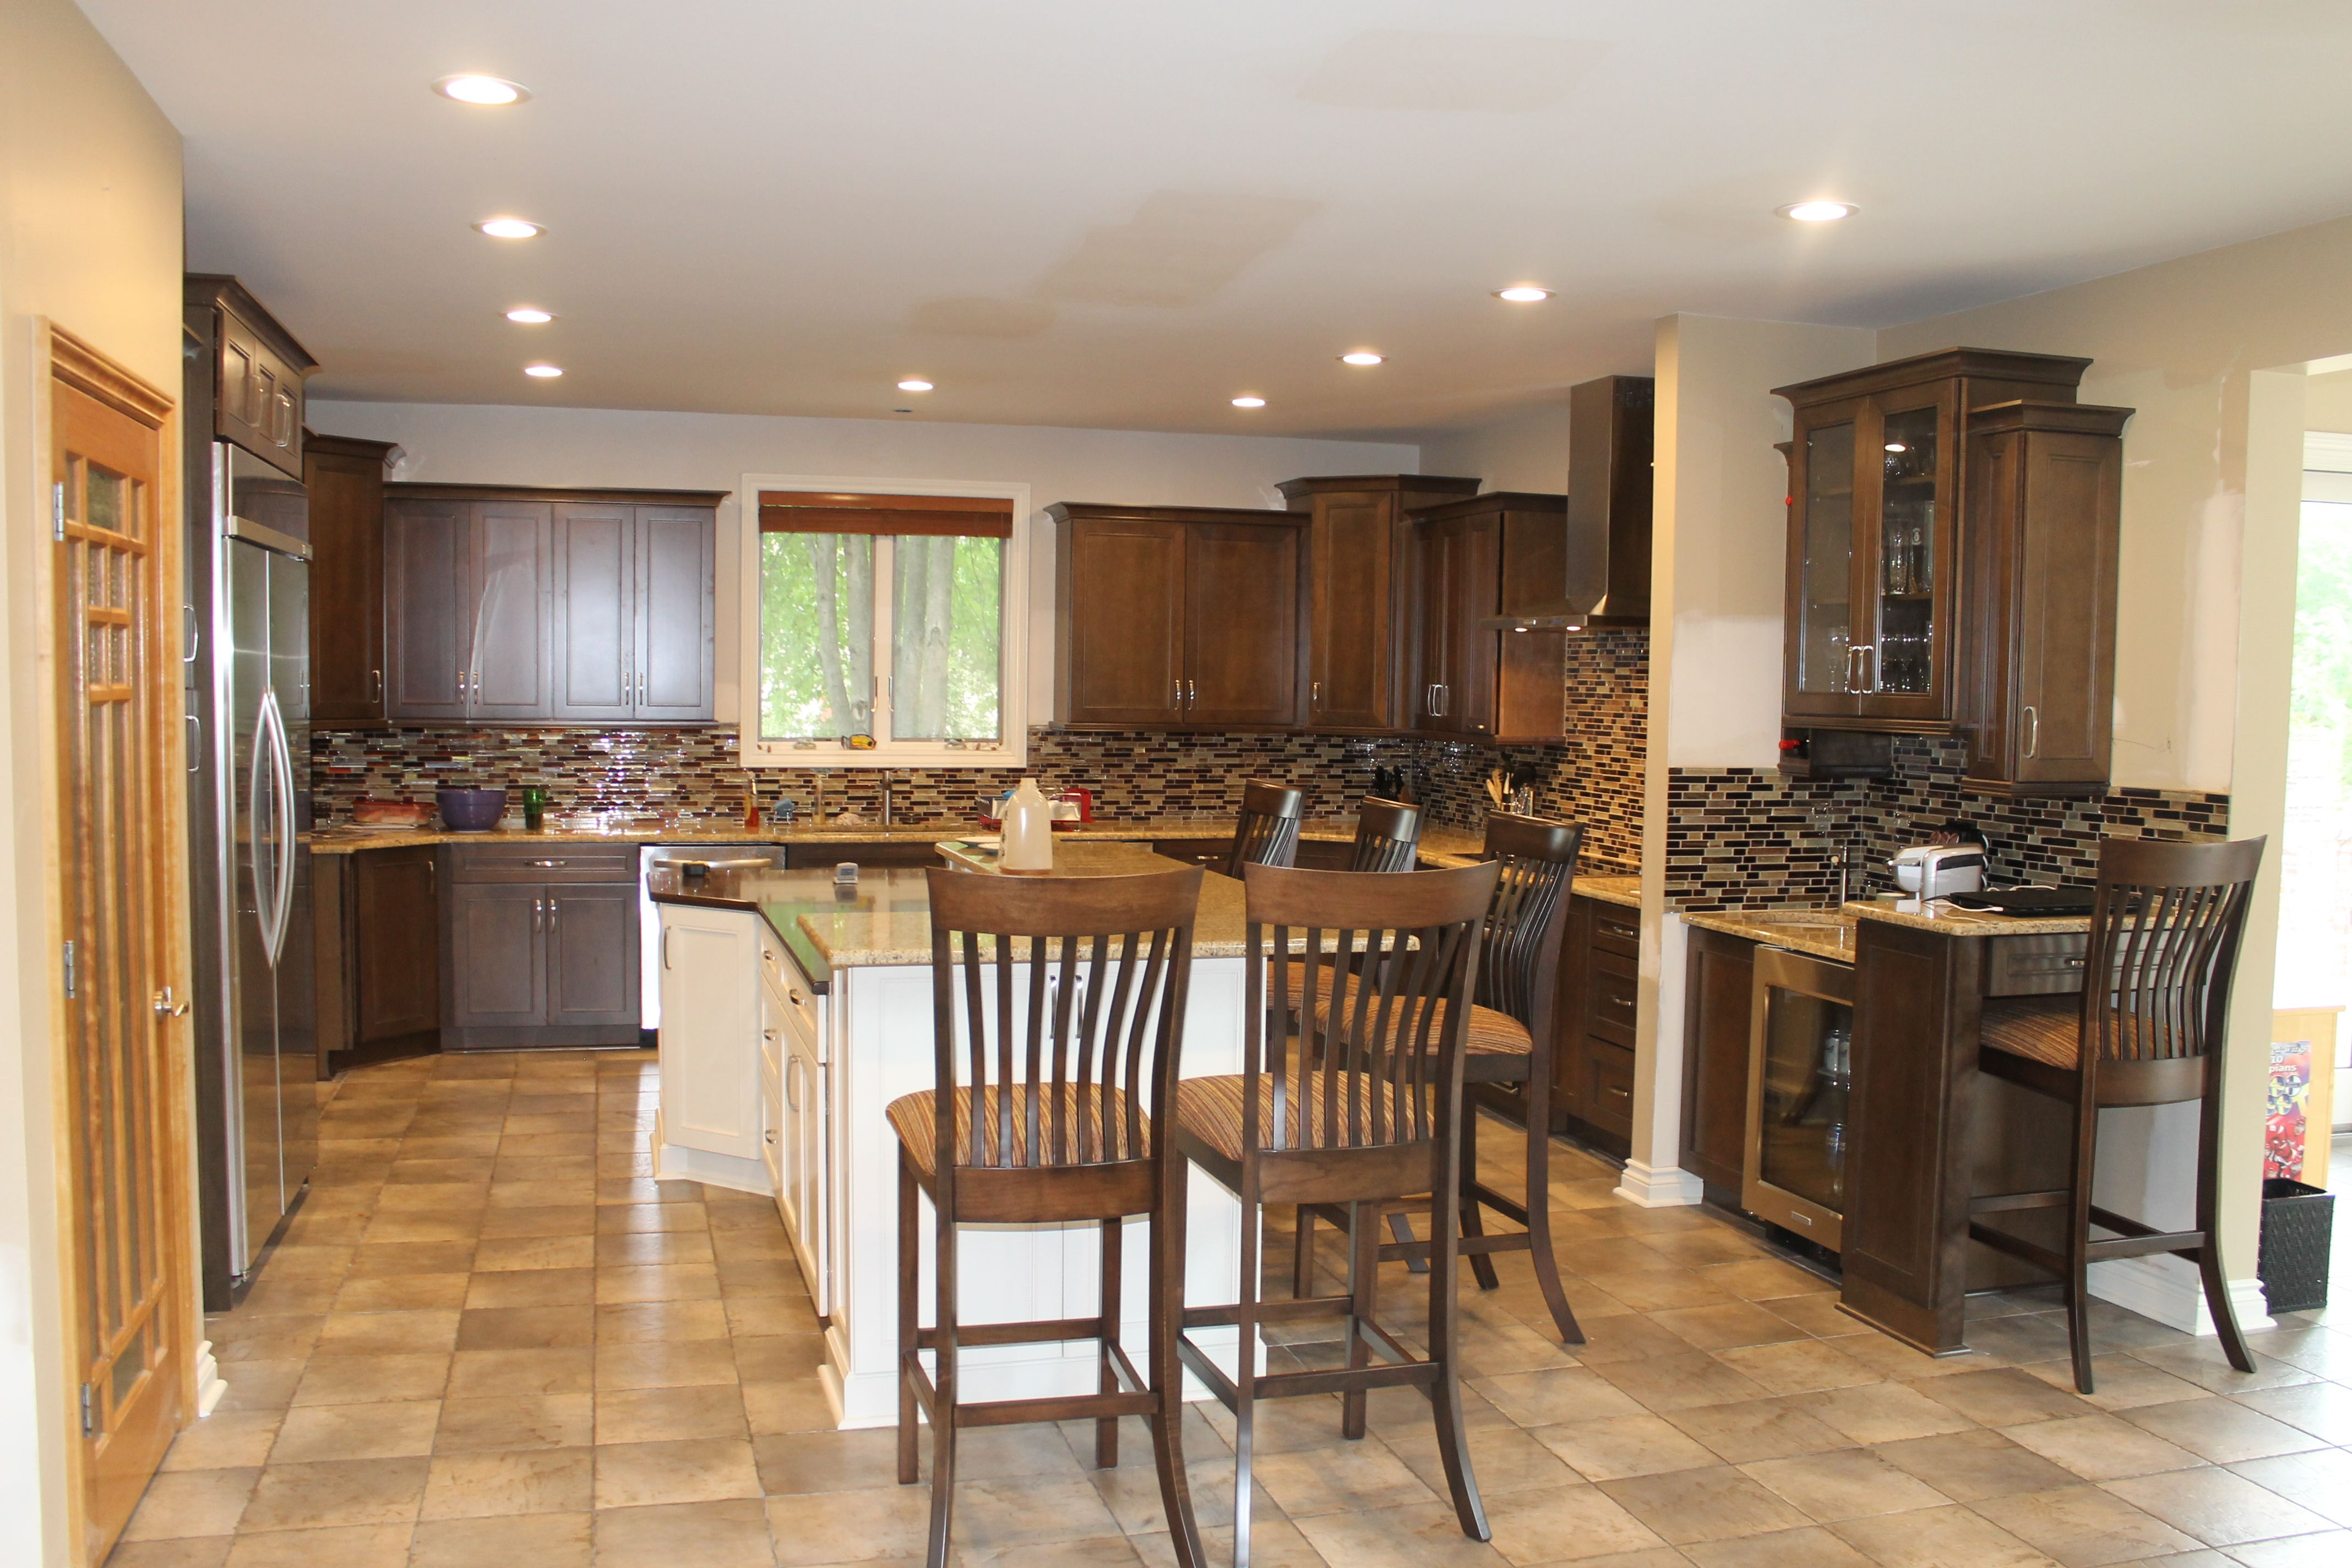 Medium Maple Cabinets with light Granite countertops and ... on Maple Kitchen Cabinets With Black Granite Countertops  id=35665